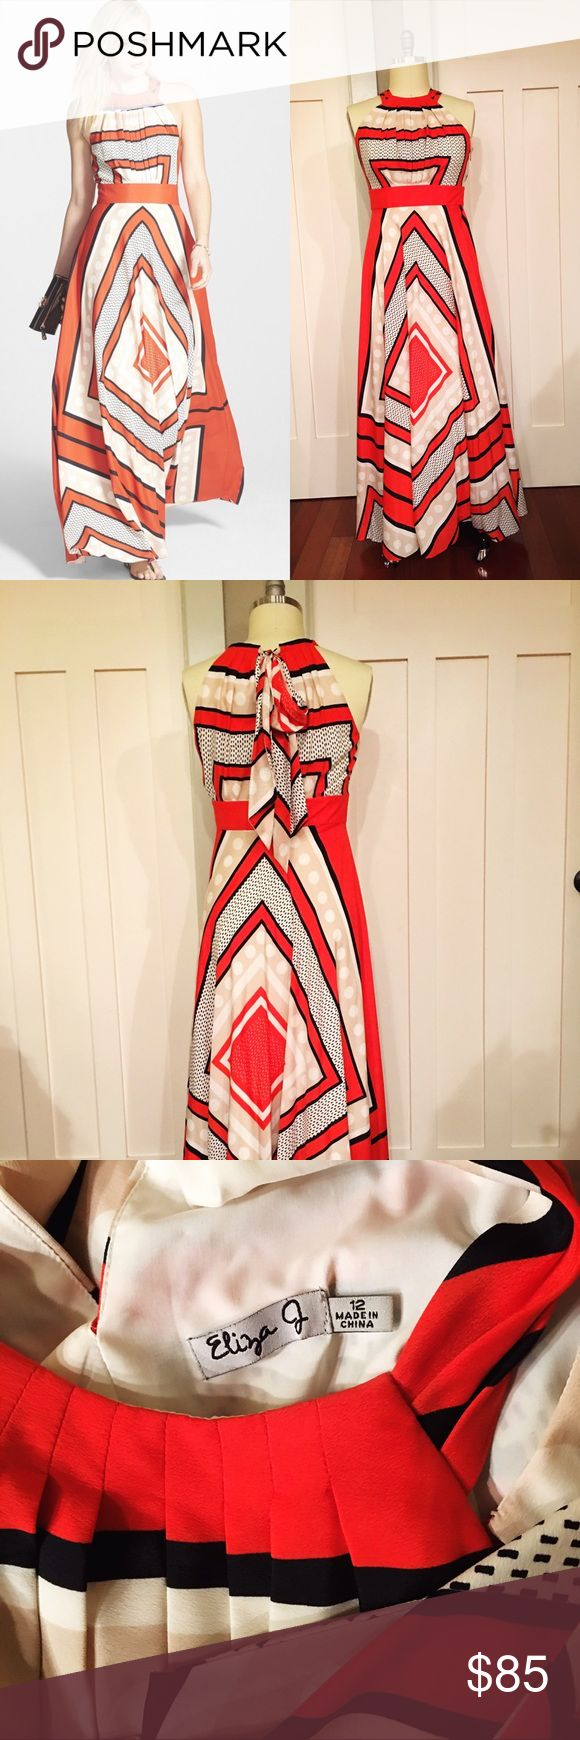 Eliza J Scarf Neck Maxi Dress Like new! Wore once to a wedding. Incredibly fun to dance in and super comfy. Side zip and adjustable halter neck - tie in a bow or let hang down back. Eliza J Dresses Maxi